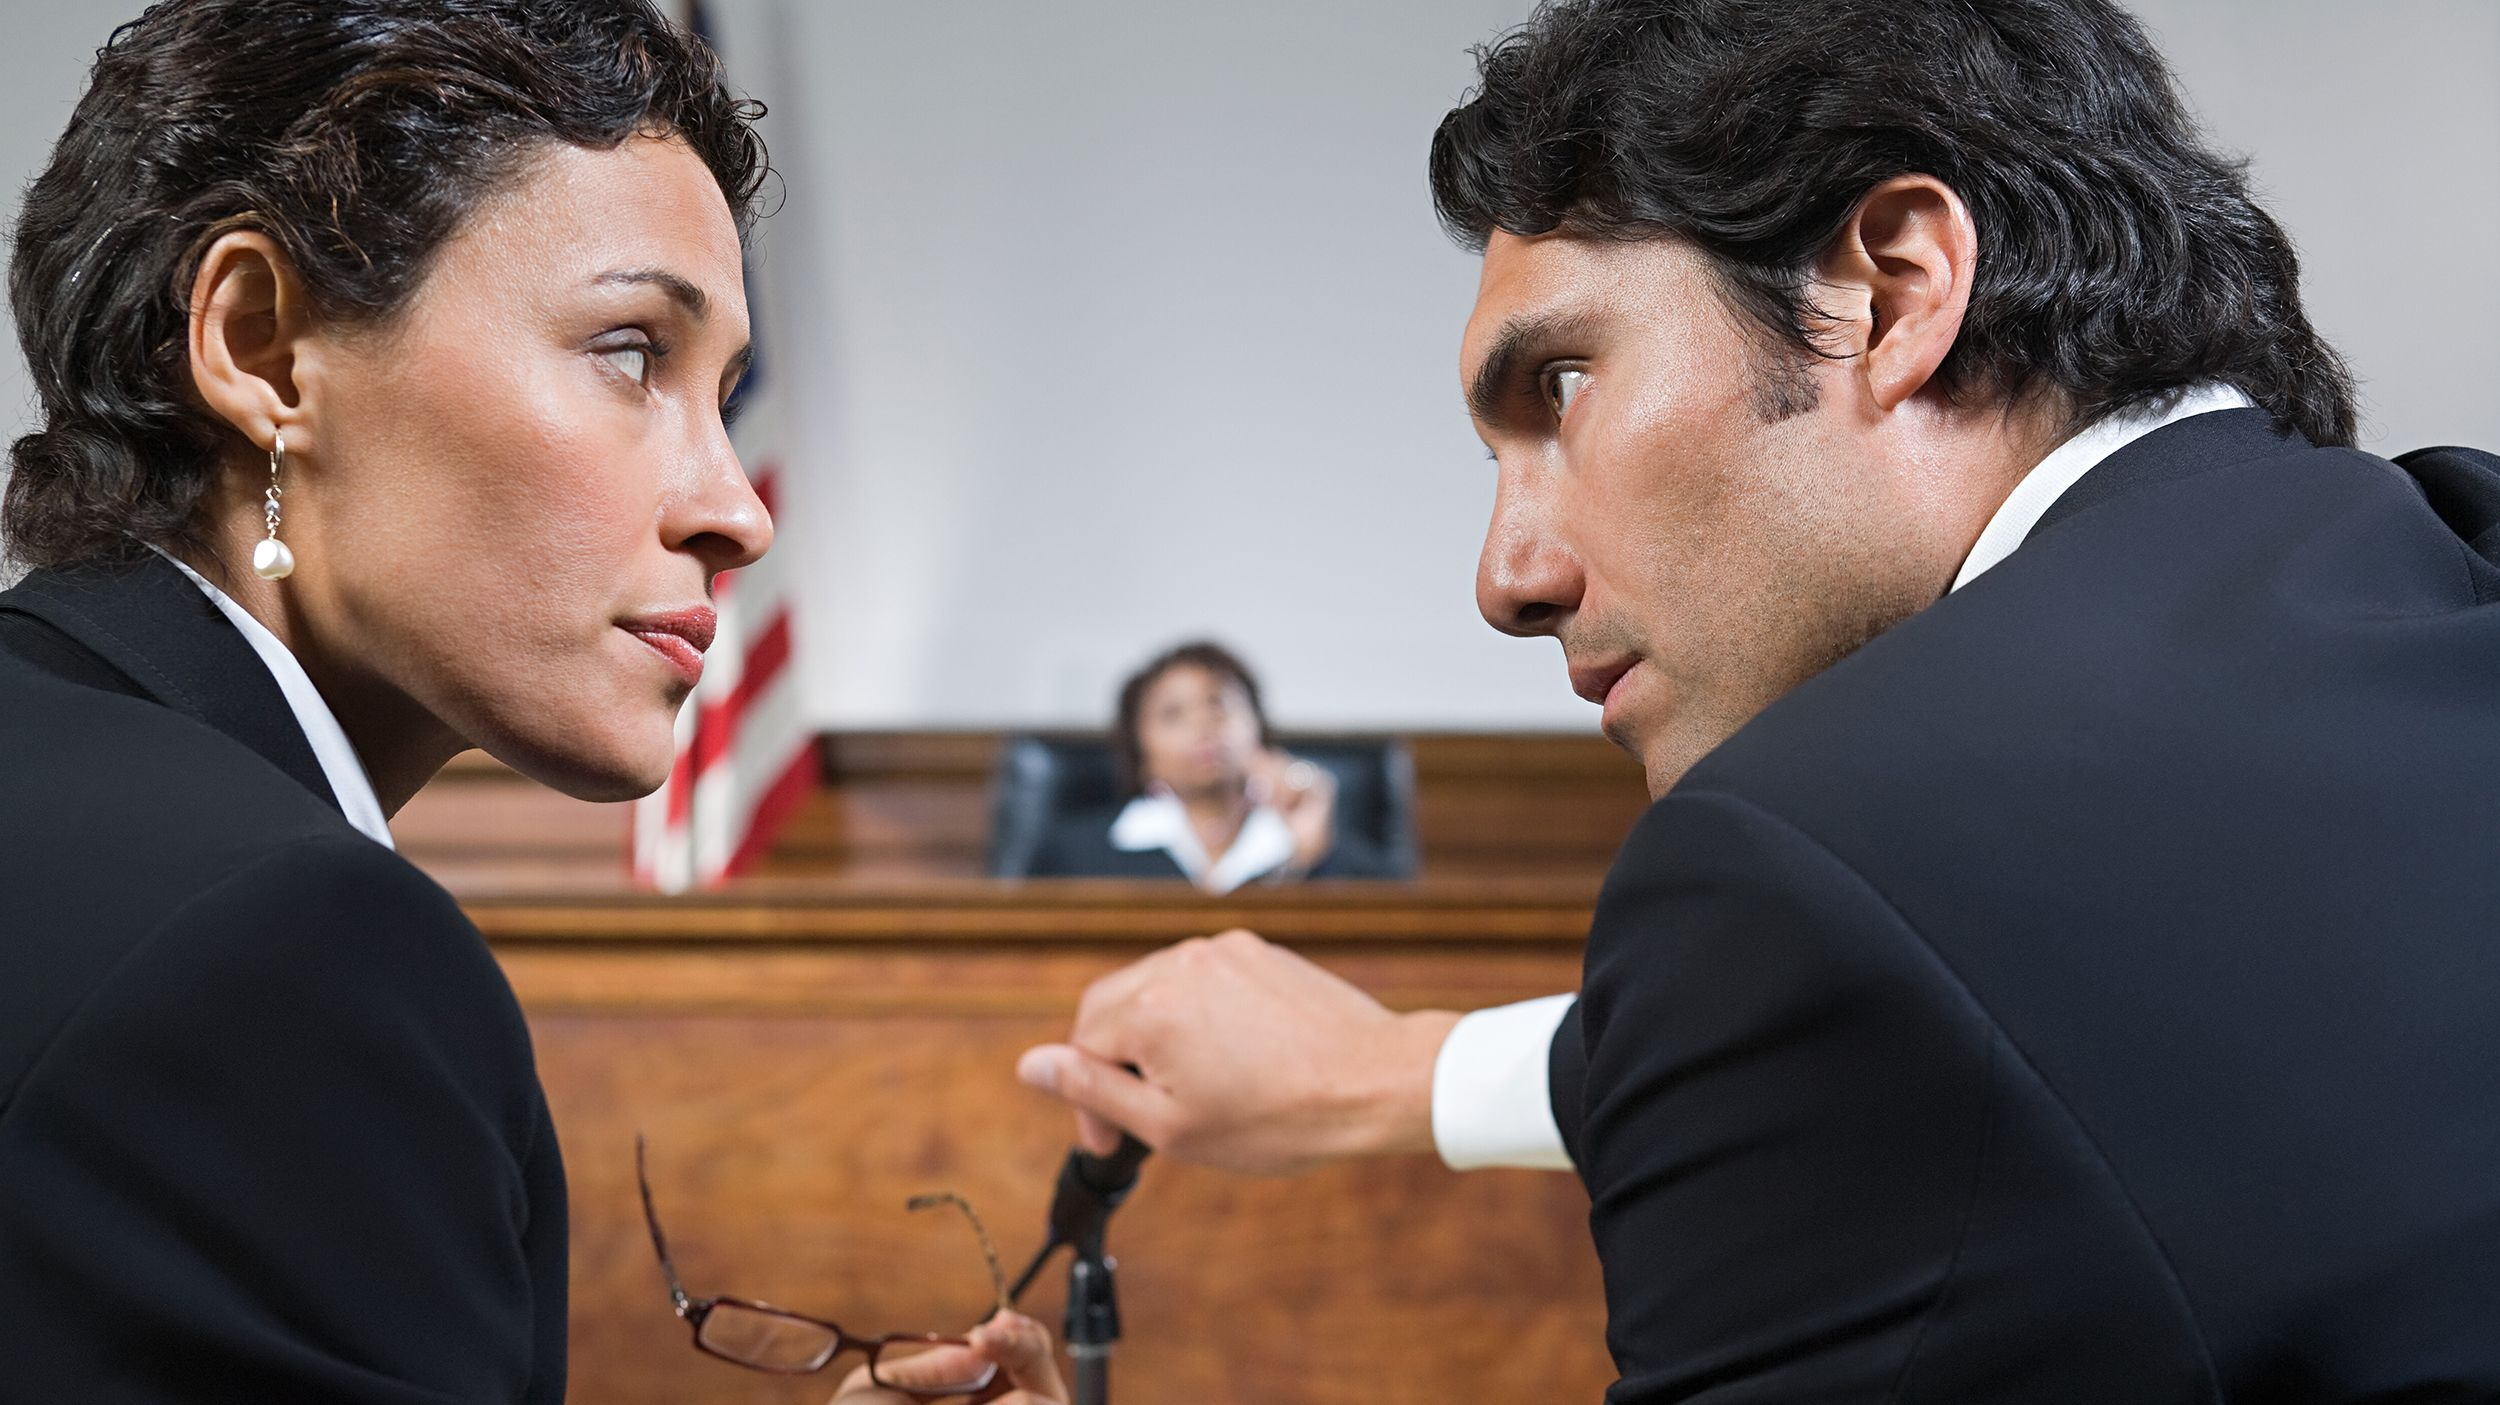 Why Should You Trust In Hiring A Criminal Defense Lawyer When In Trouble?